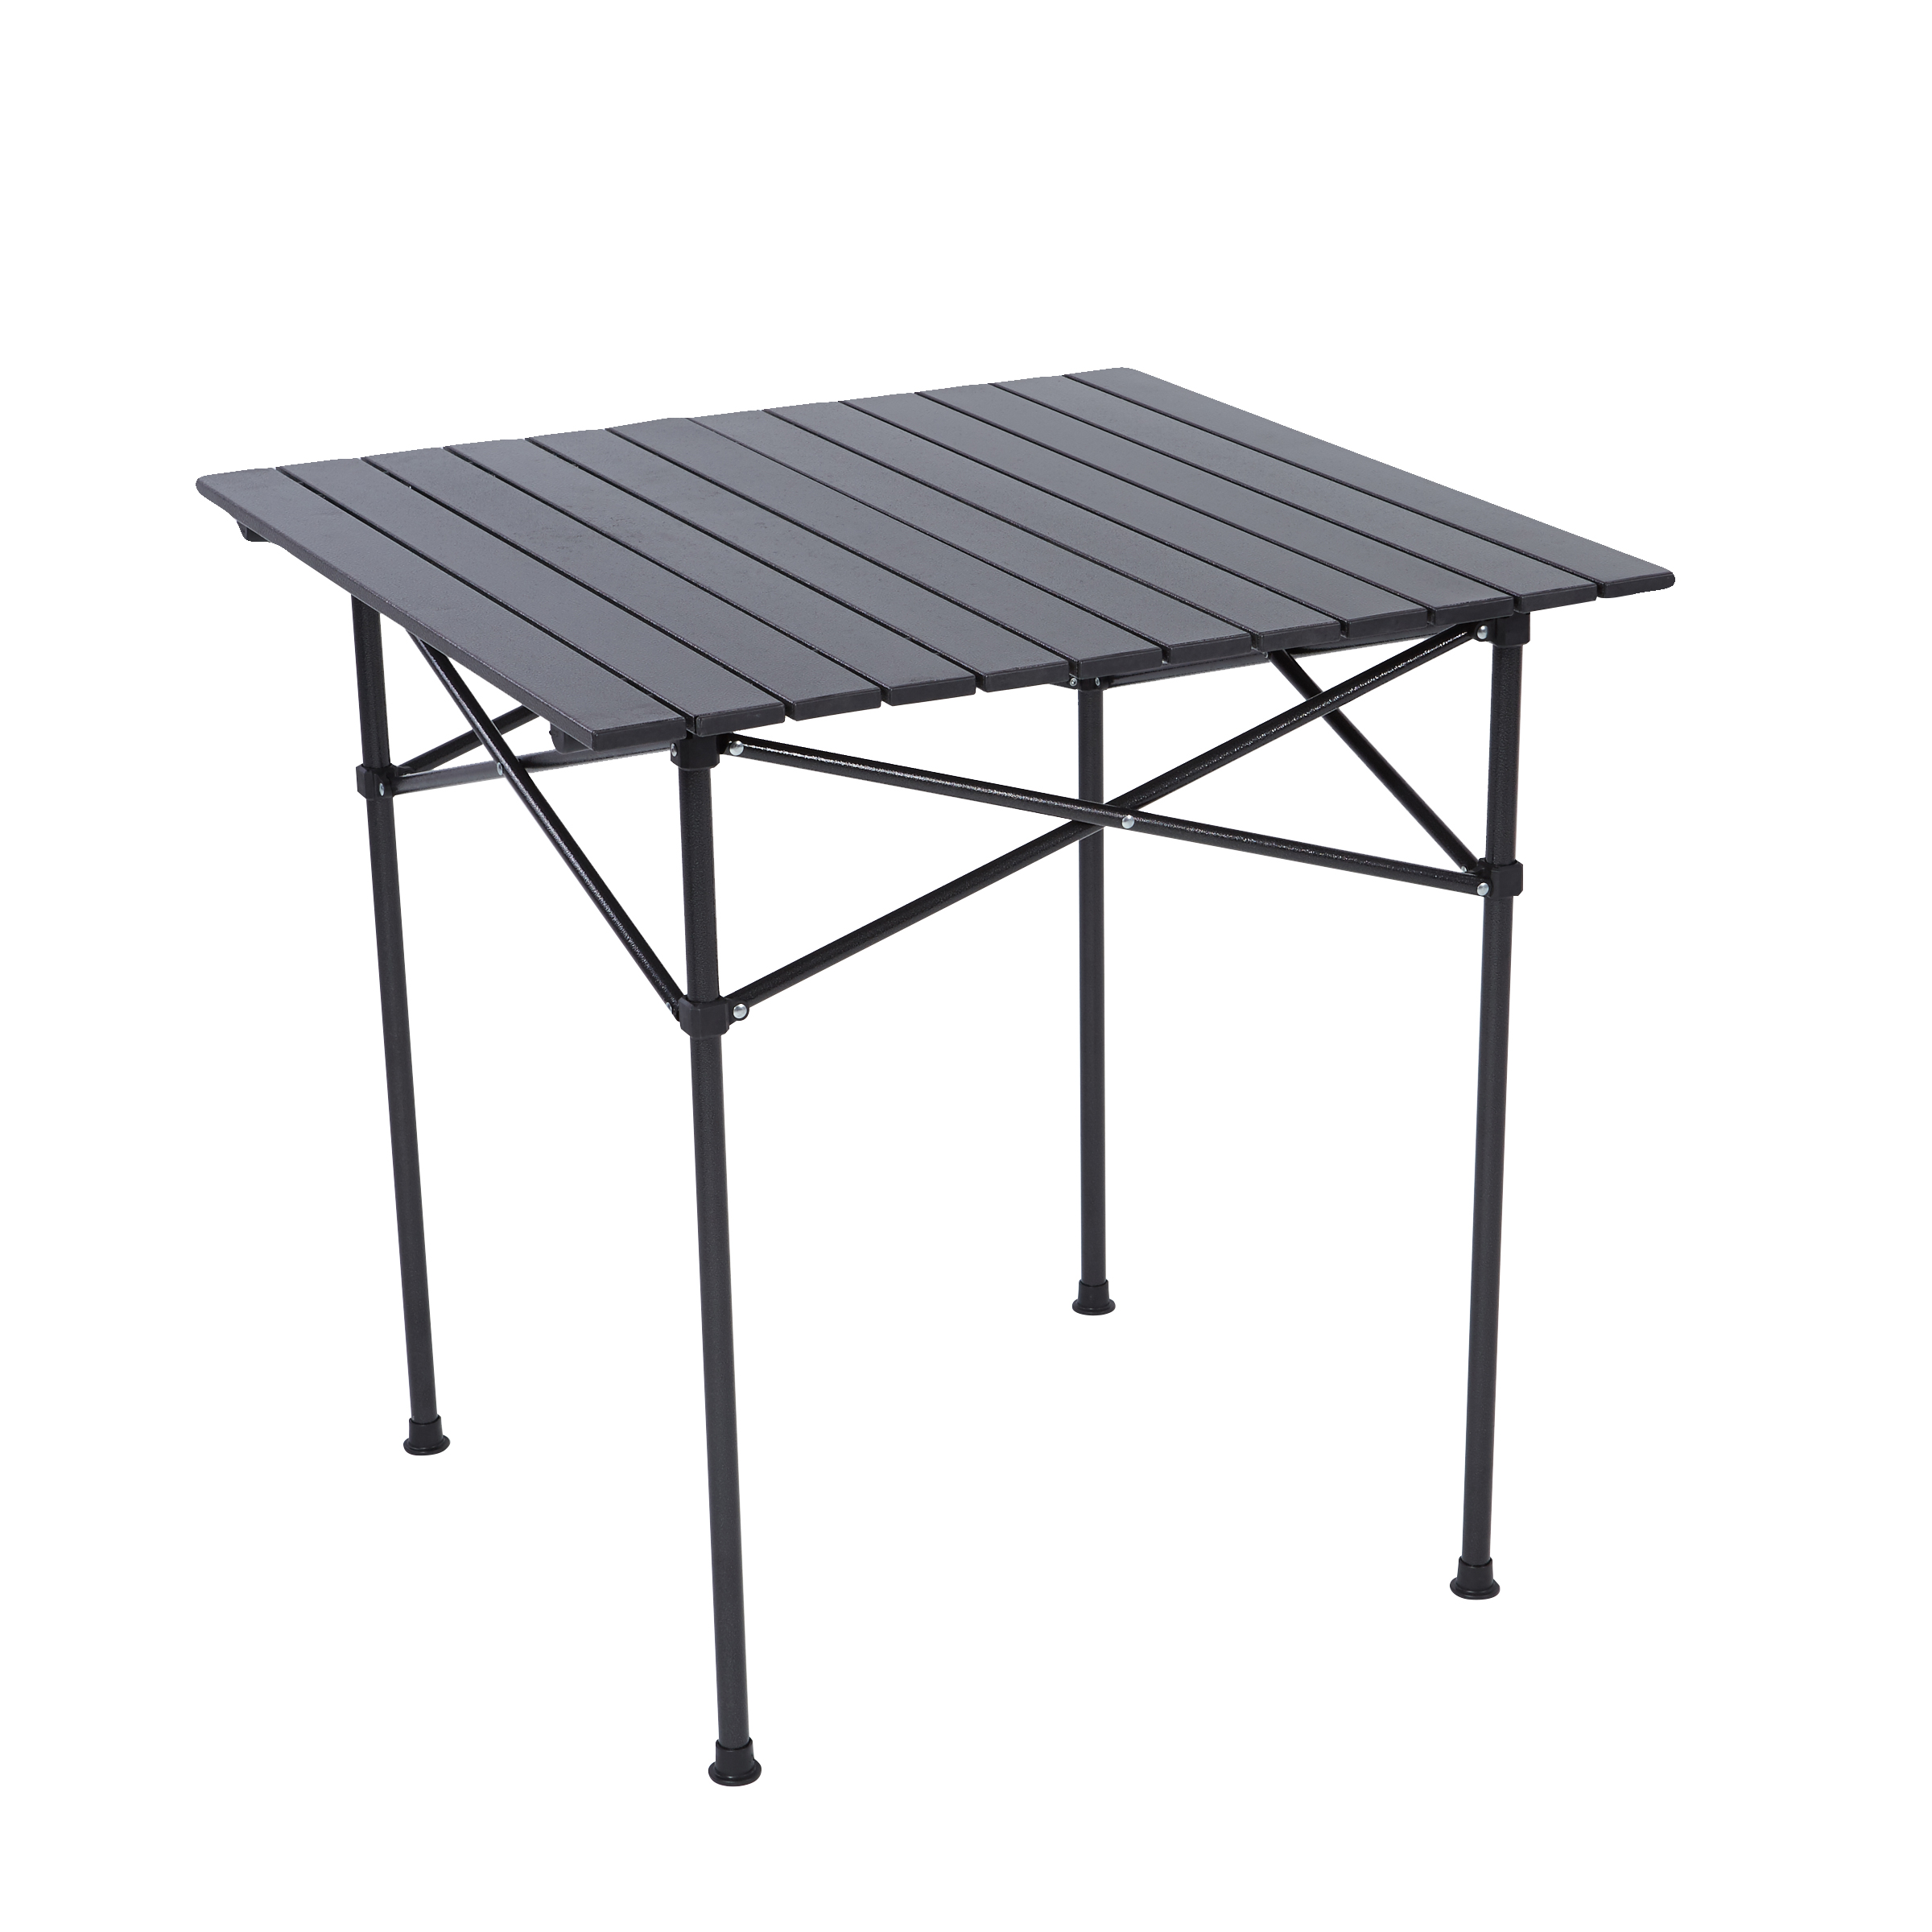 RORAIMA Easy Setup Portable Compact Aluminum Camping Folding Table With 120Lbs capacity